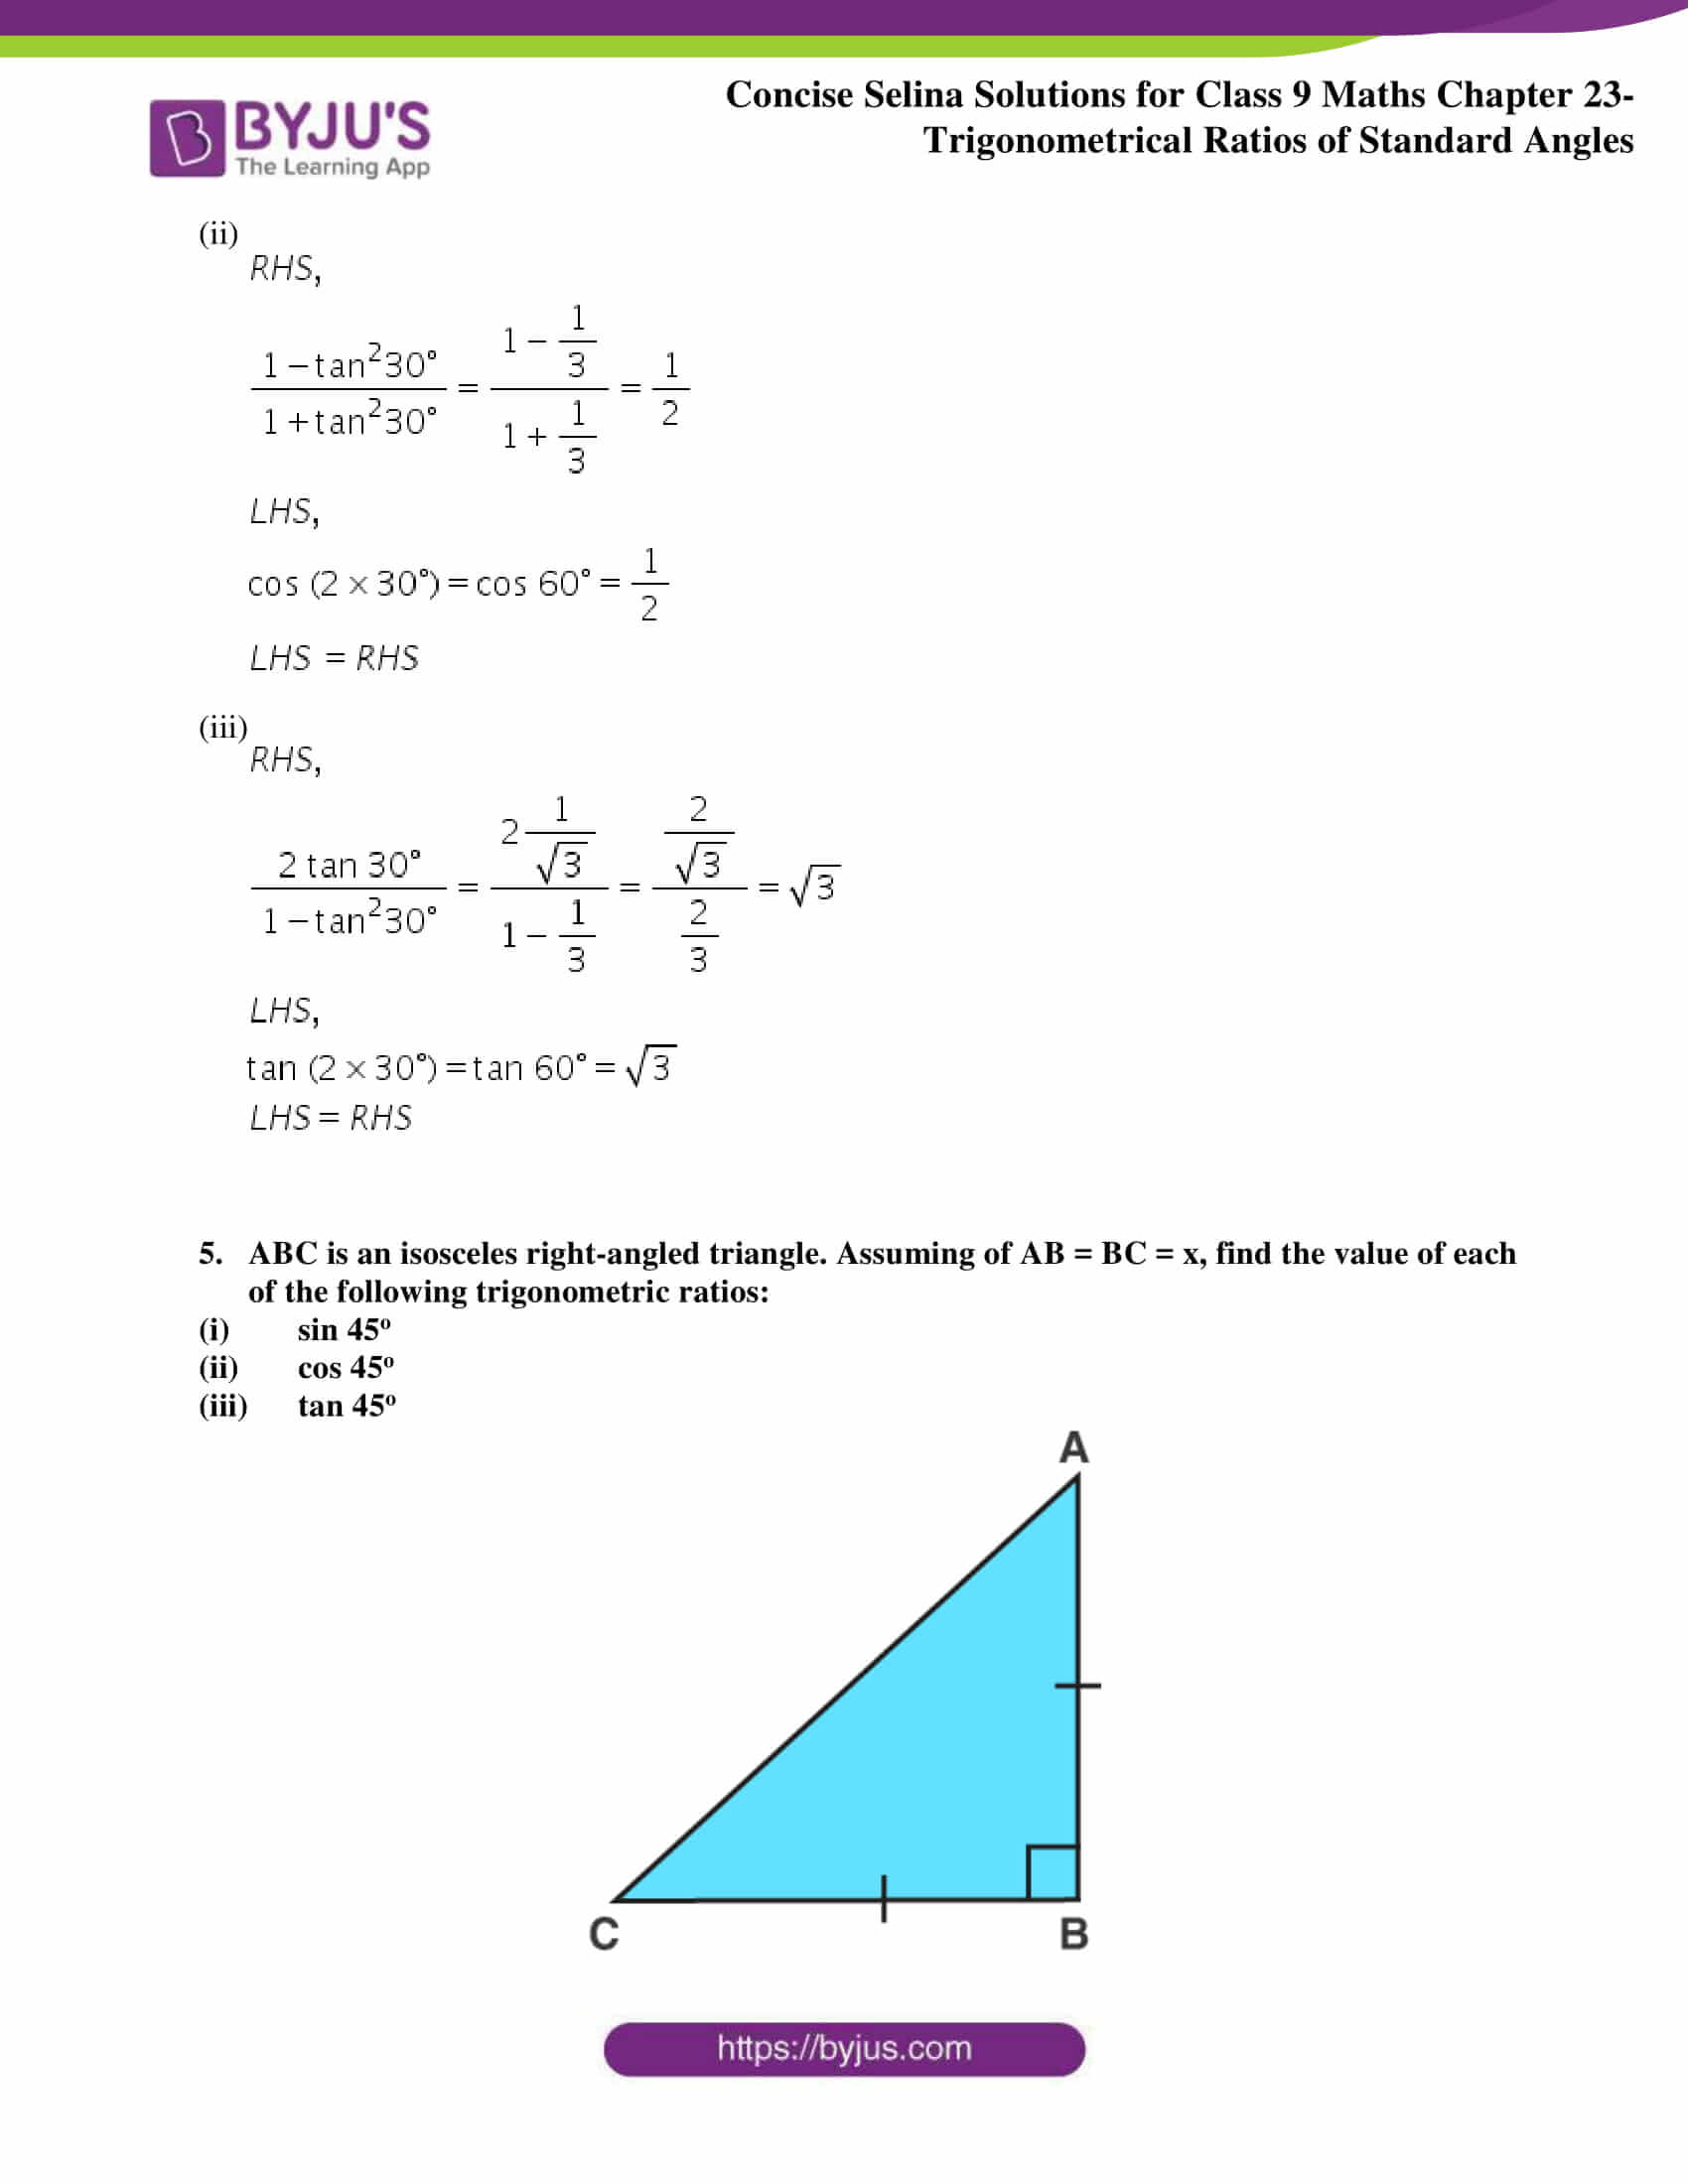 Concise Selina Solutions Class 9 Maths Chapter 23 part 04